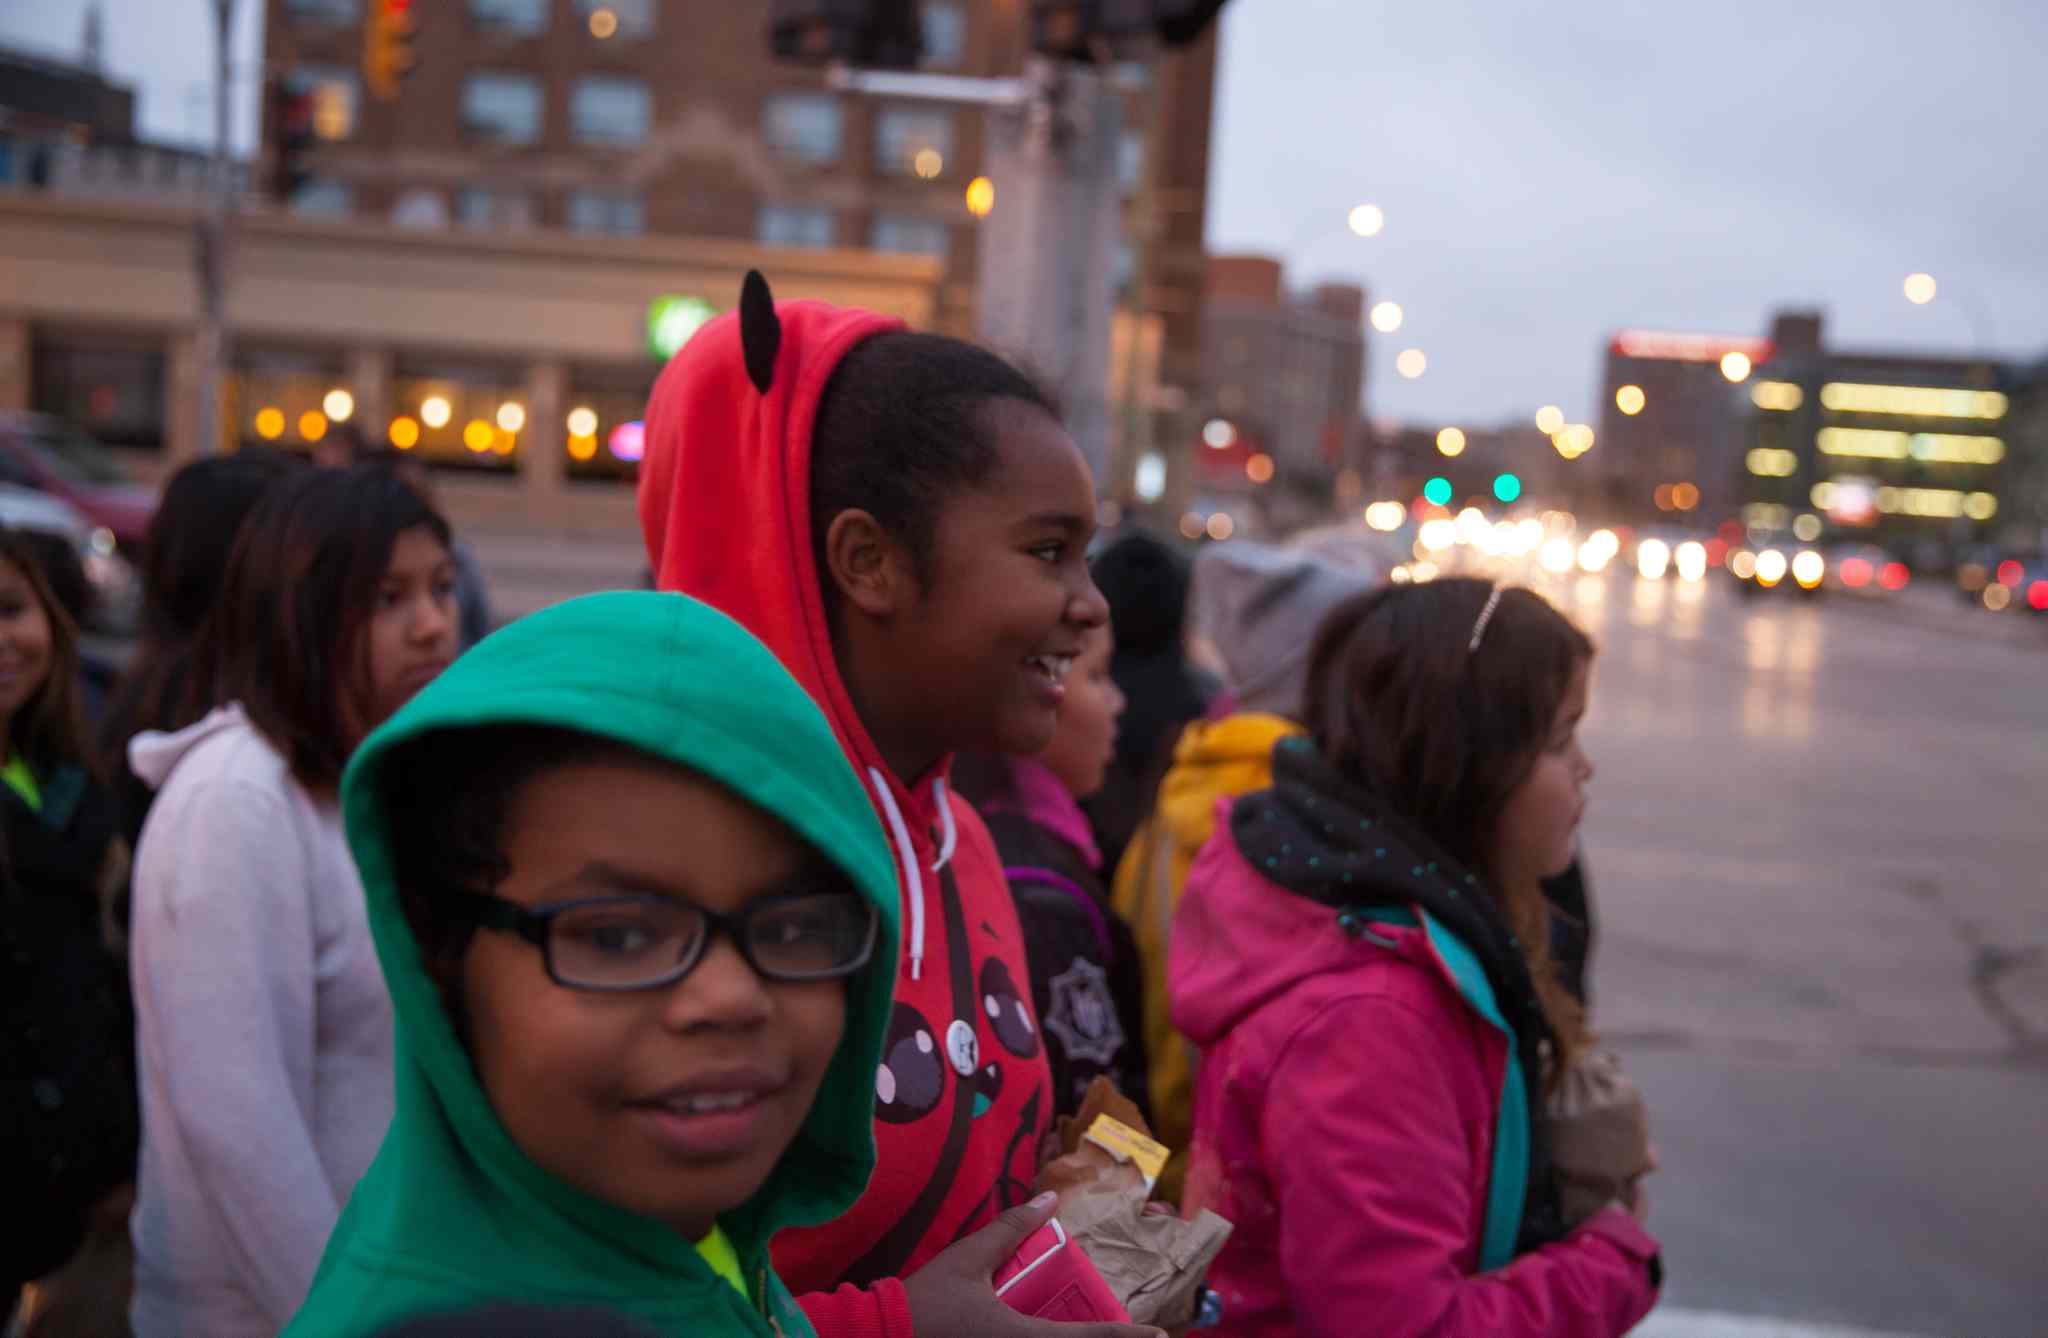 Kassidy Bone (foreground) and Deevah Clearsky laugh as they walk along Portage Avenue on their way to MTS Centre for We Day.